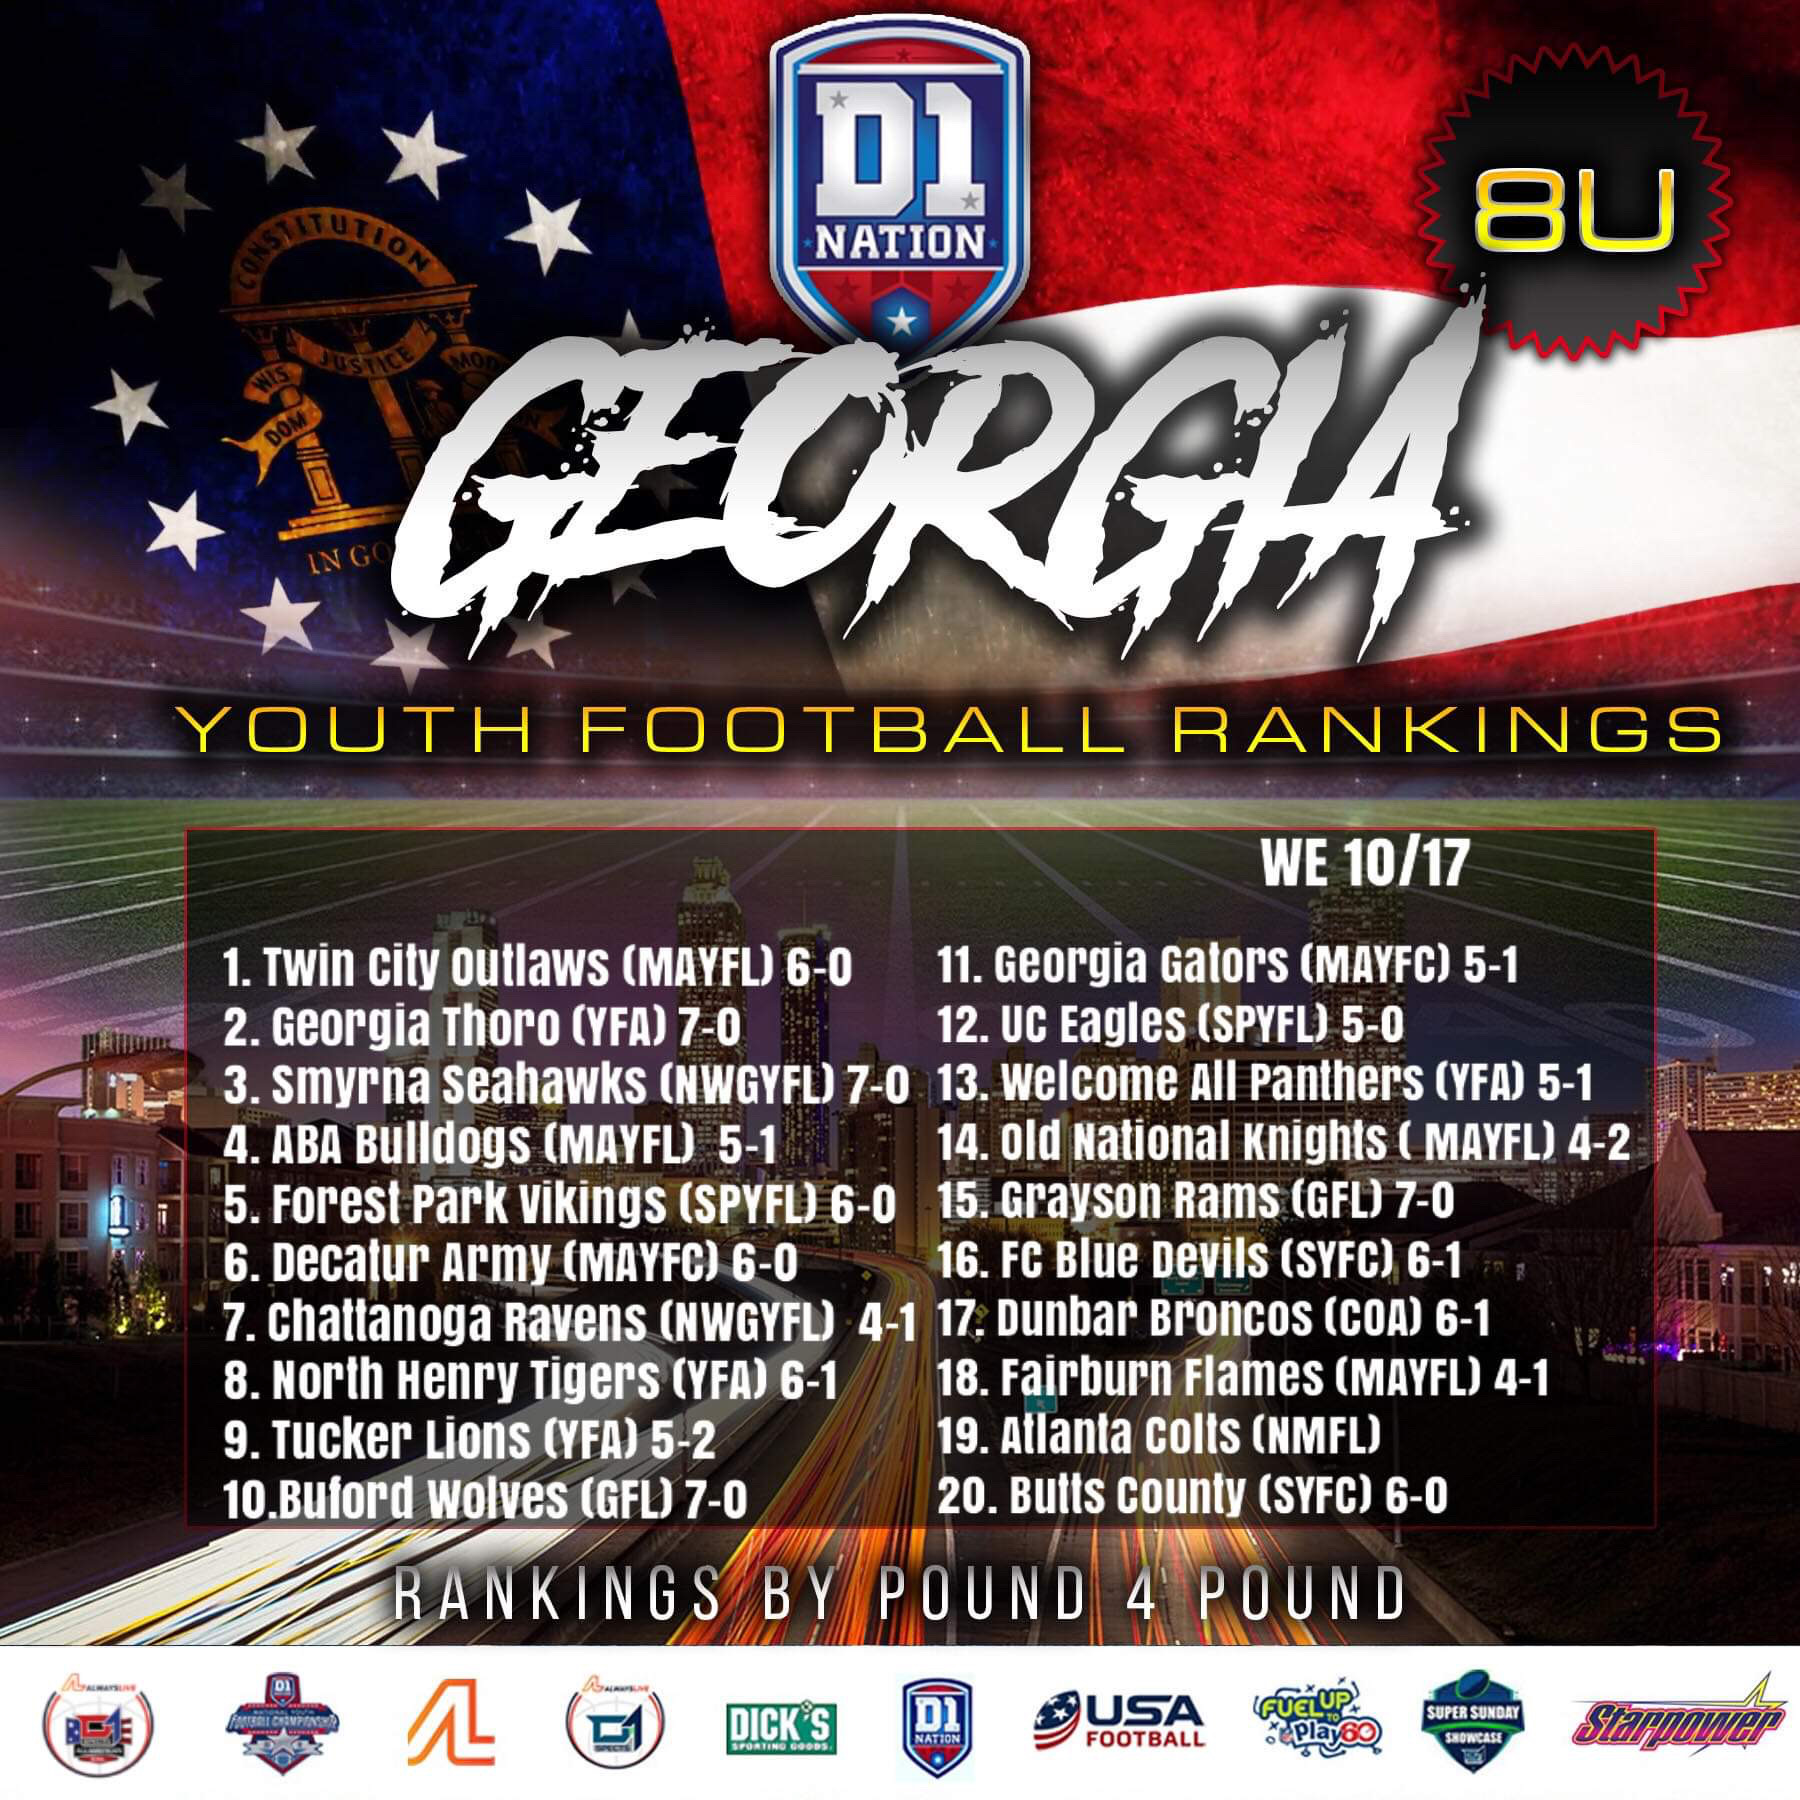 Update 10/21/2019: Georgia Youth Football Rankings – 8U